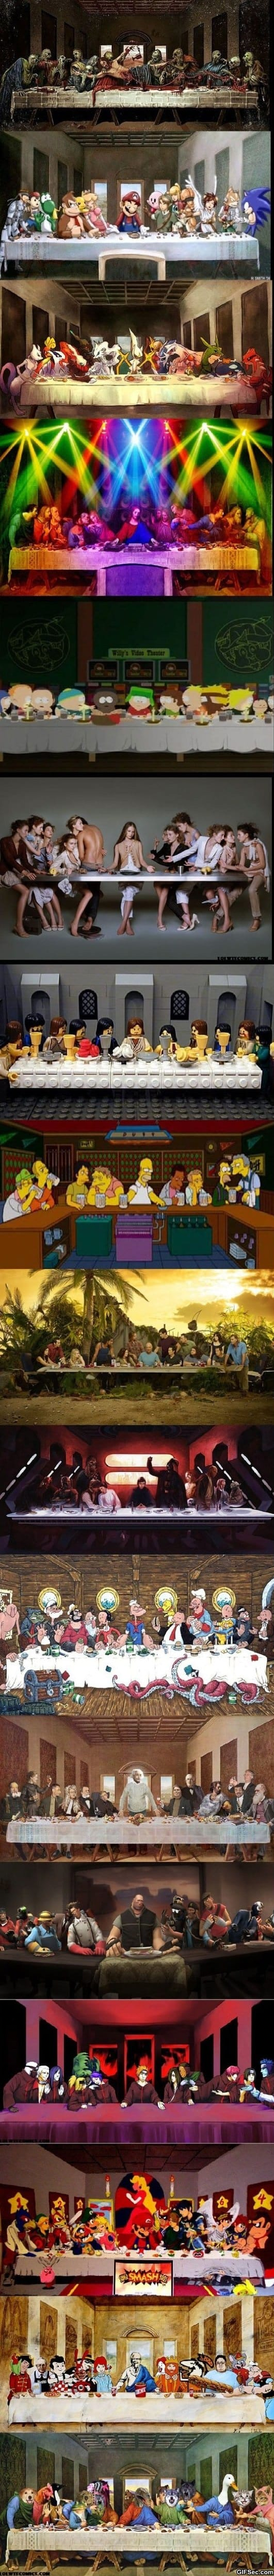 Different Versions Of The Last Supper